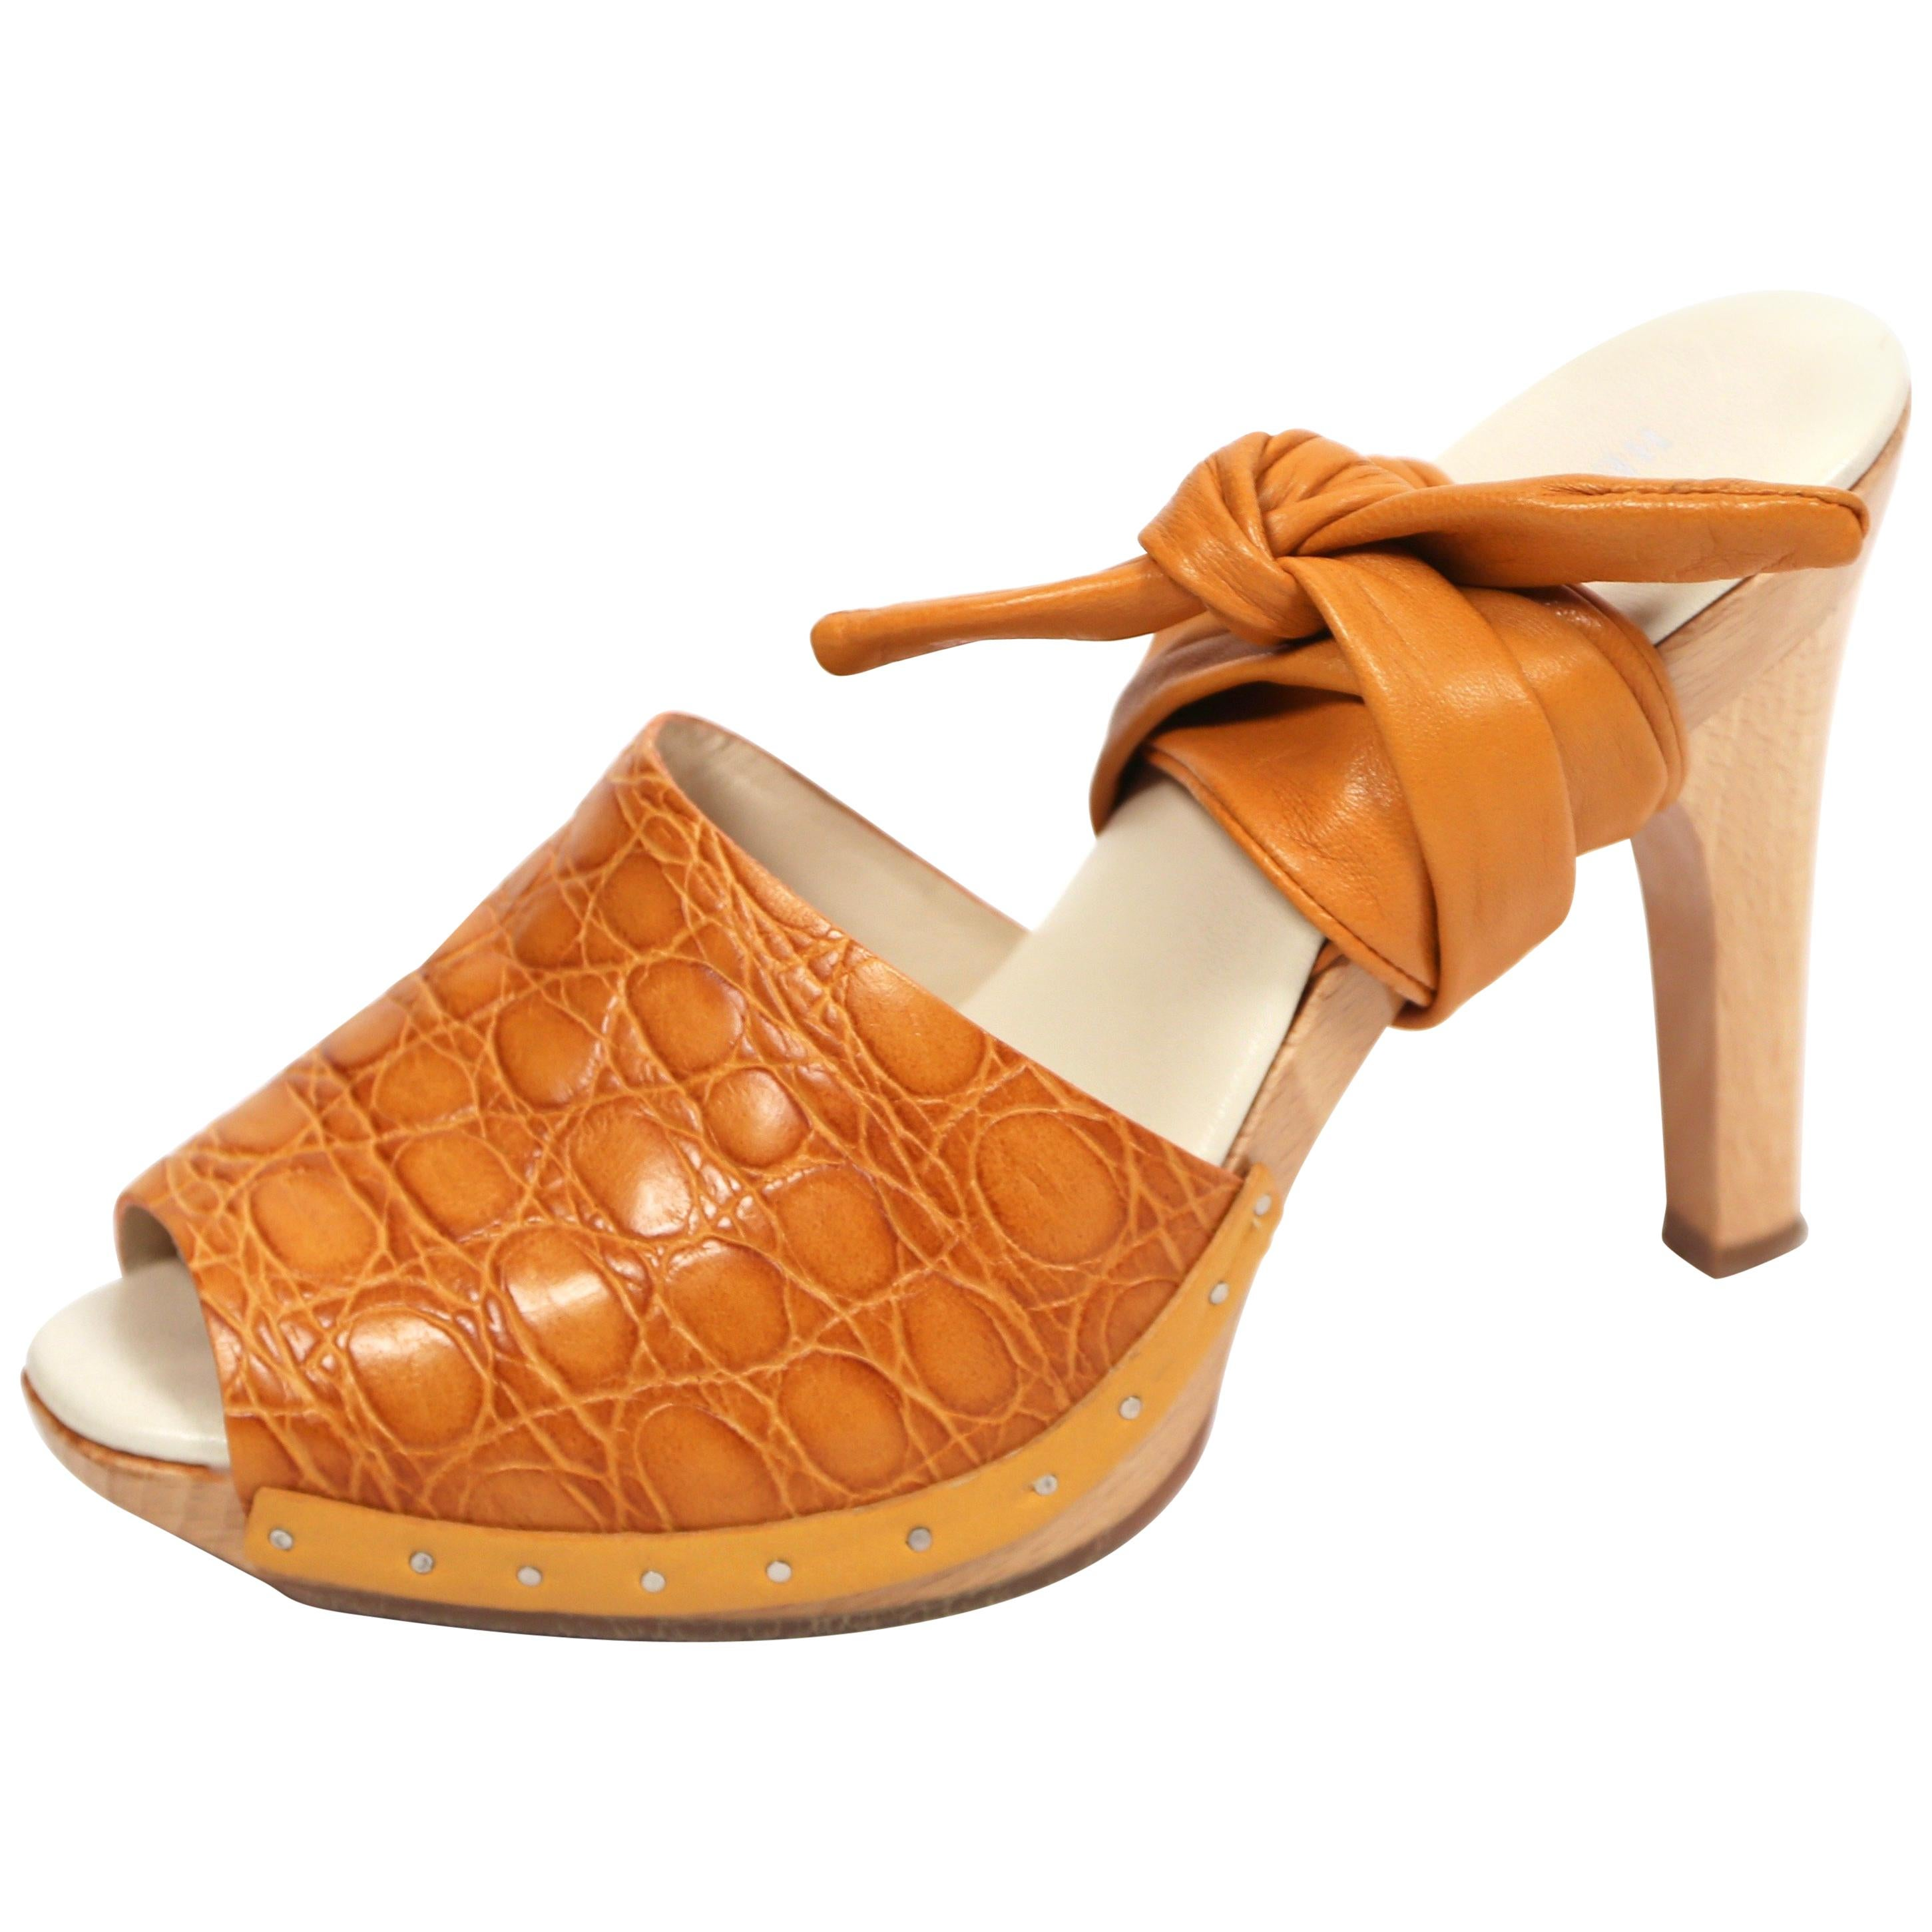 edadd99e5 Wood Heel Shoes - 30 For Sale on 1stdibs